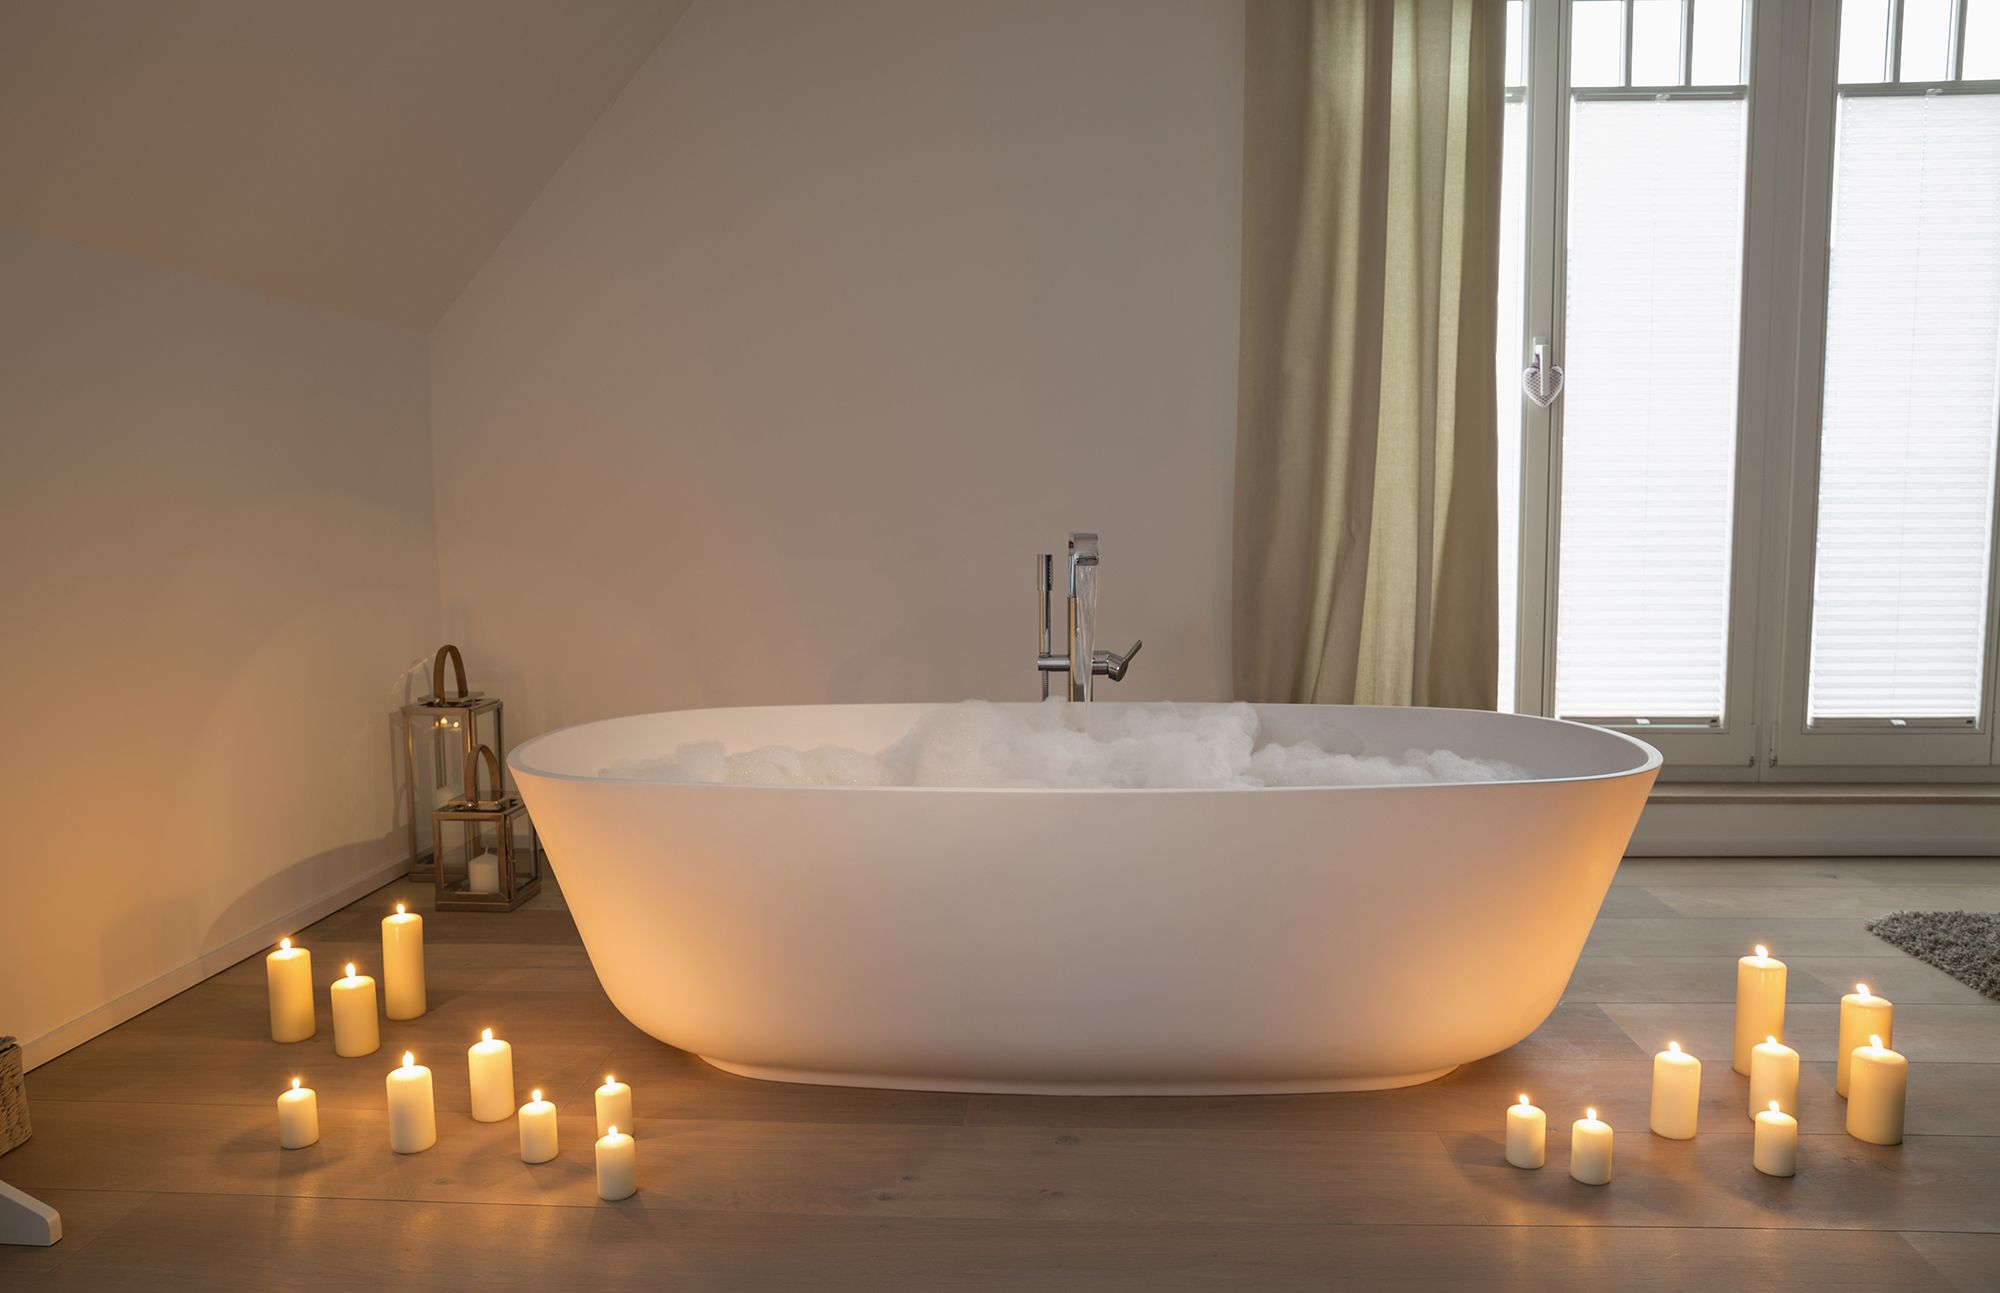 8 ways to make your bath even more relaxing and cosy